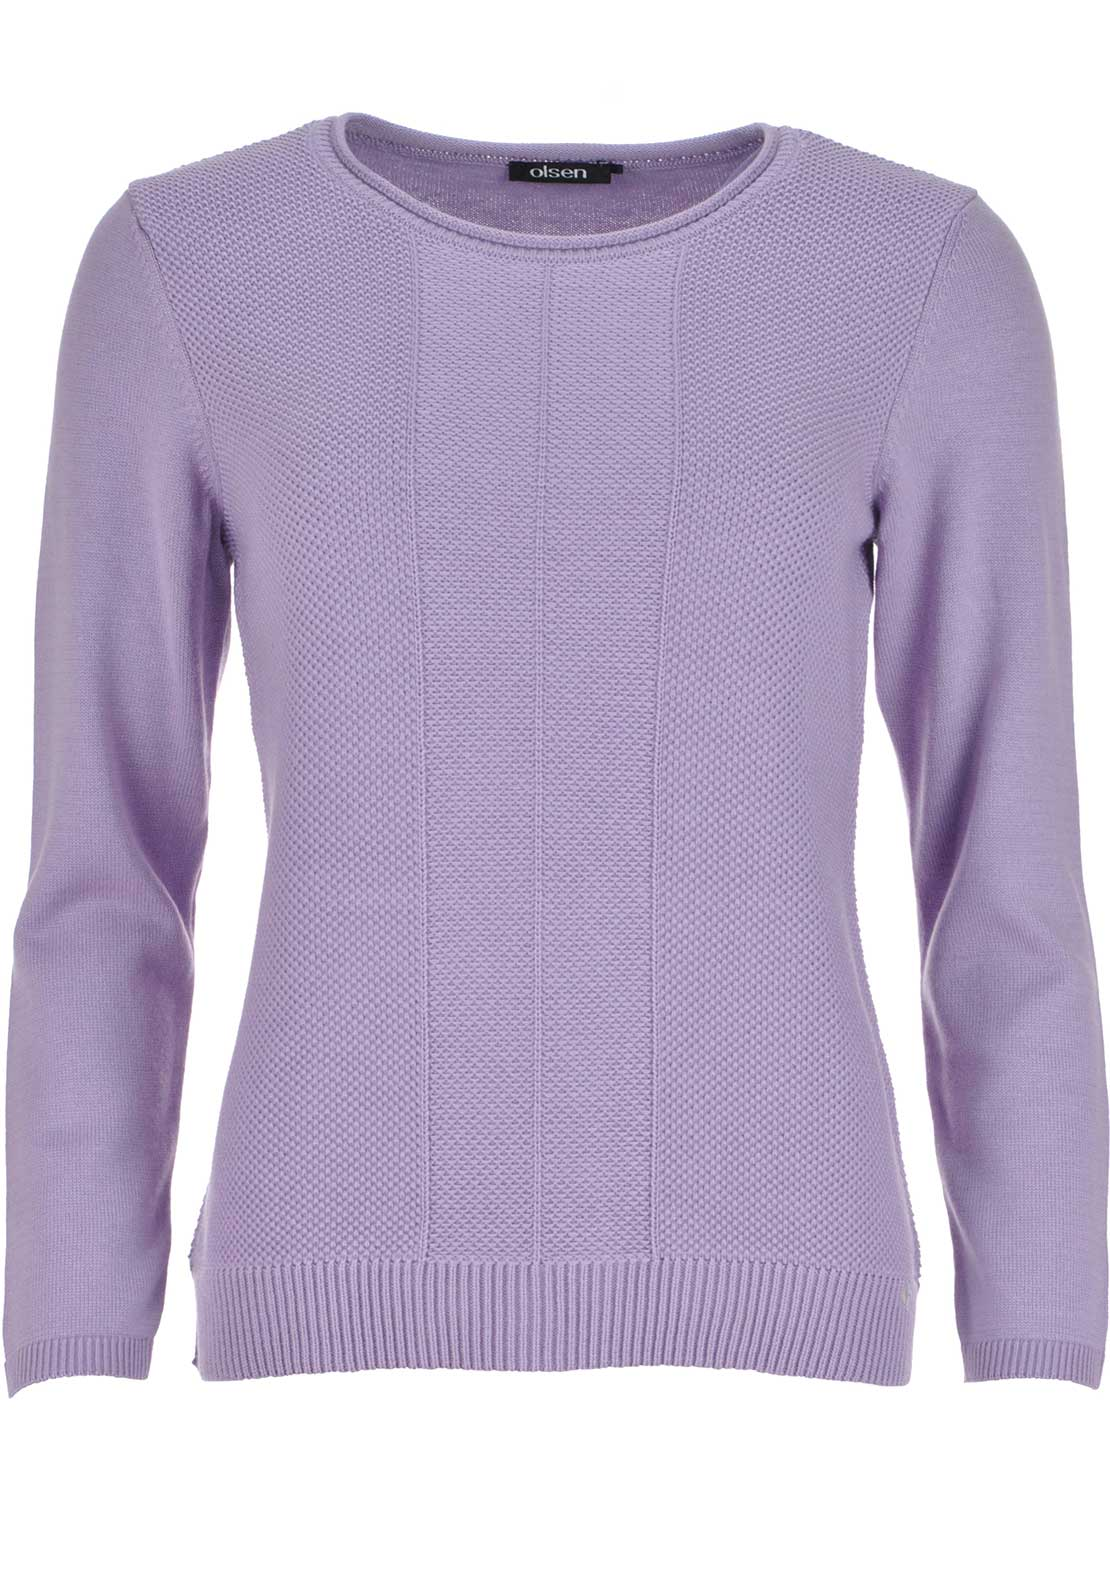 Olsen Textured Knit Sweater Jumper, Lilac